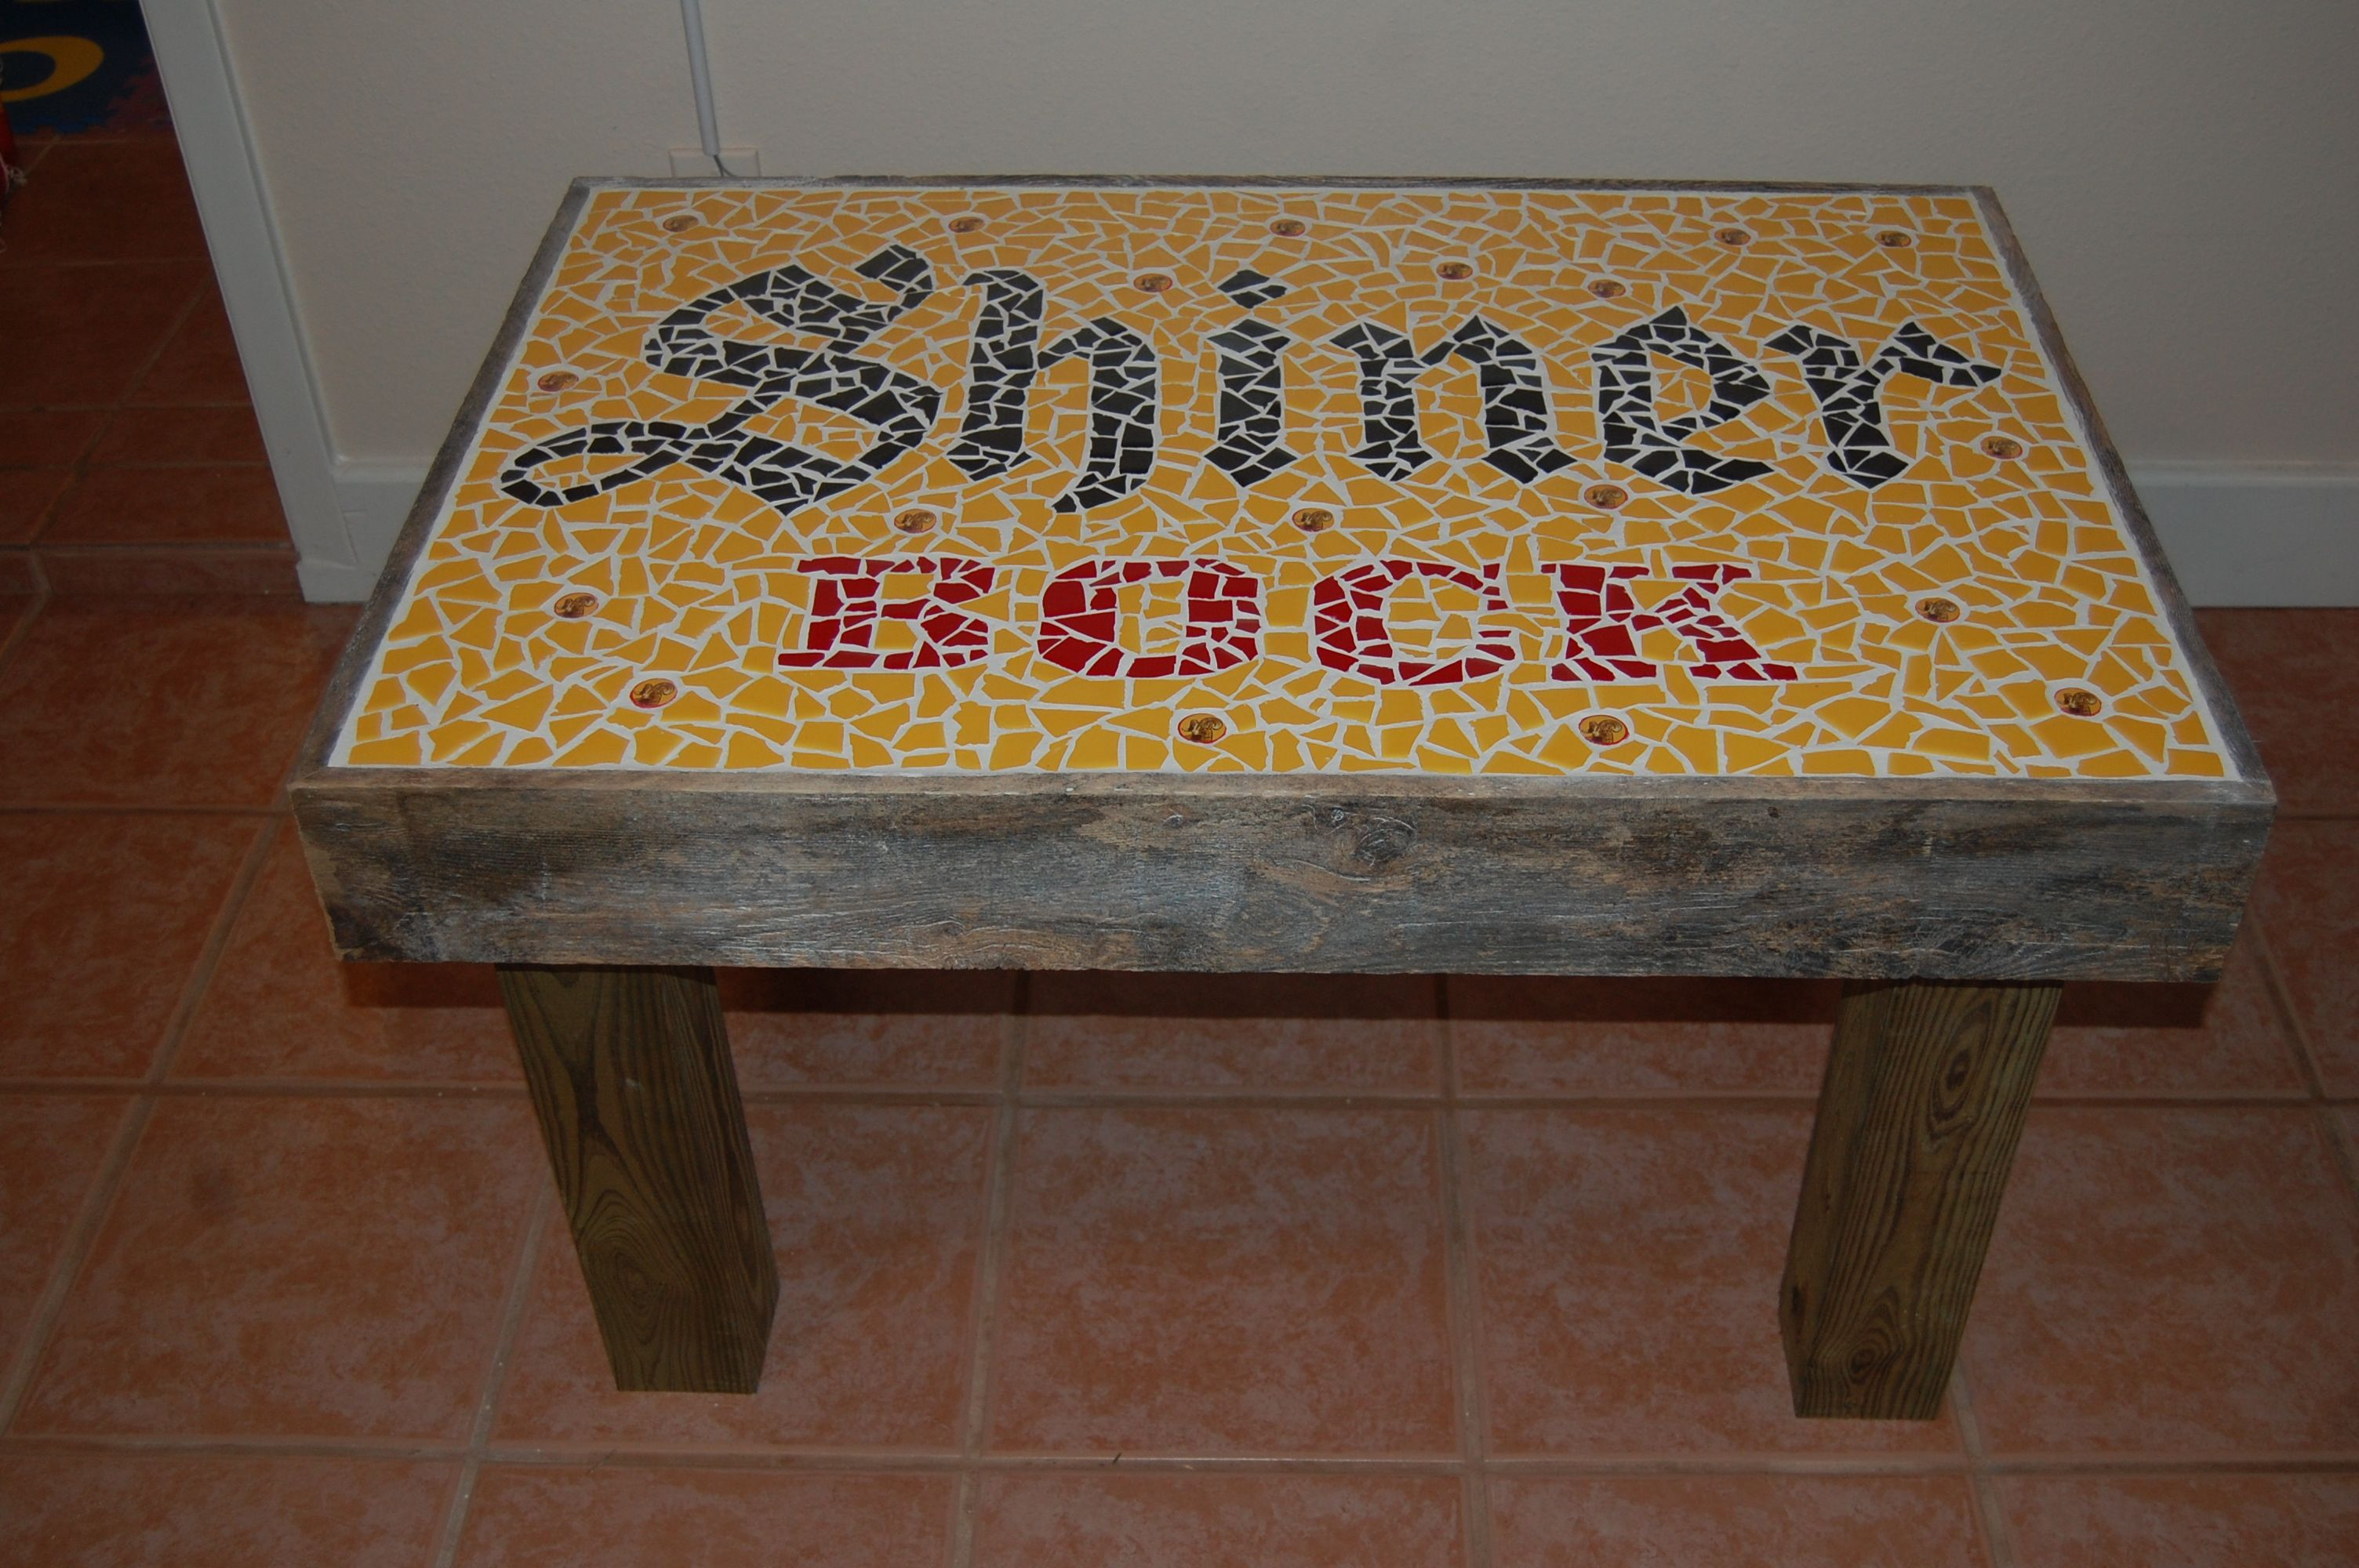 Shiner bock mosaic coffee table with tile shiner bock for How to make a table out of bottle caps